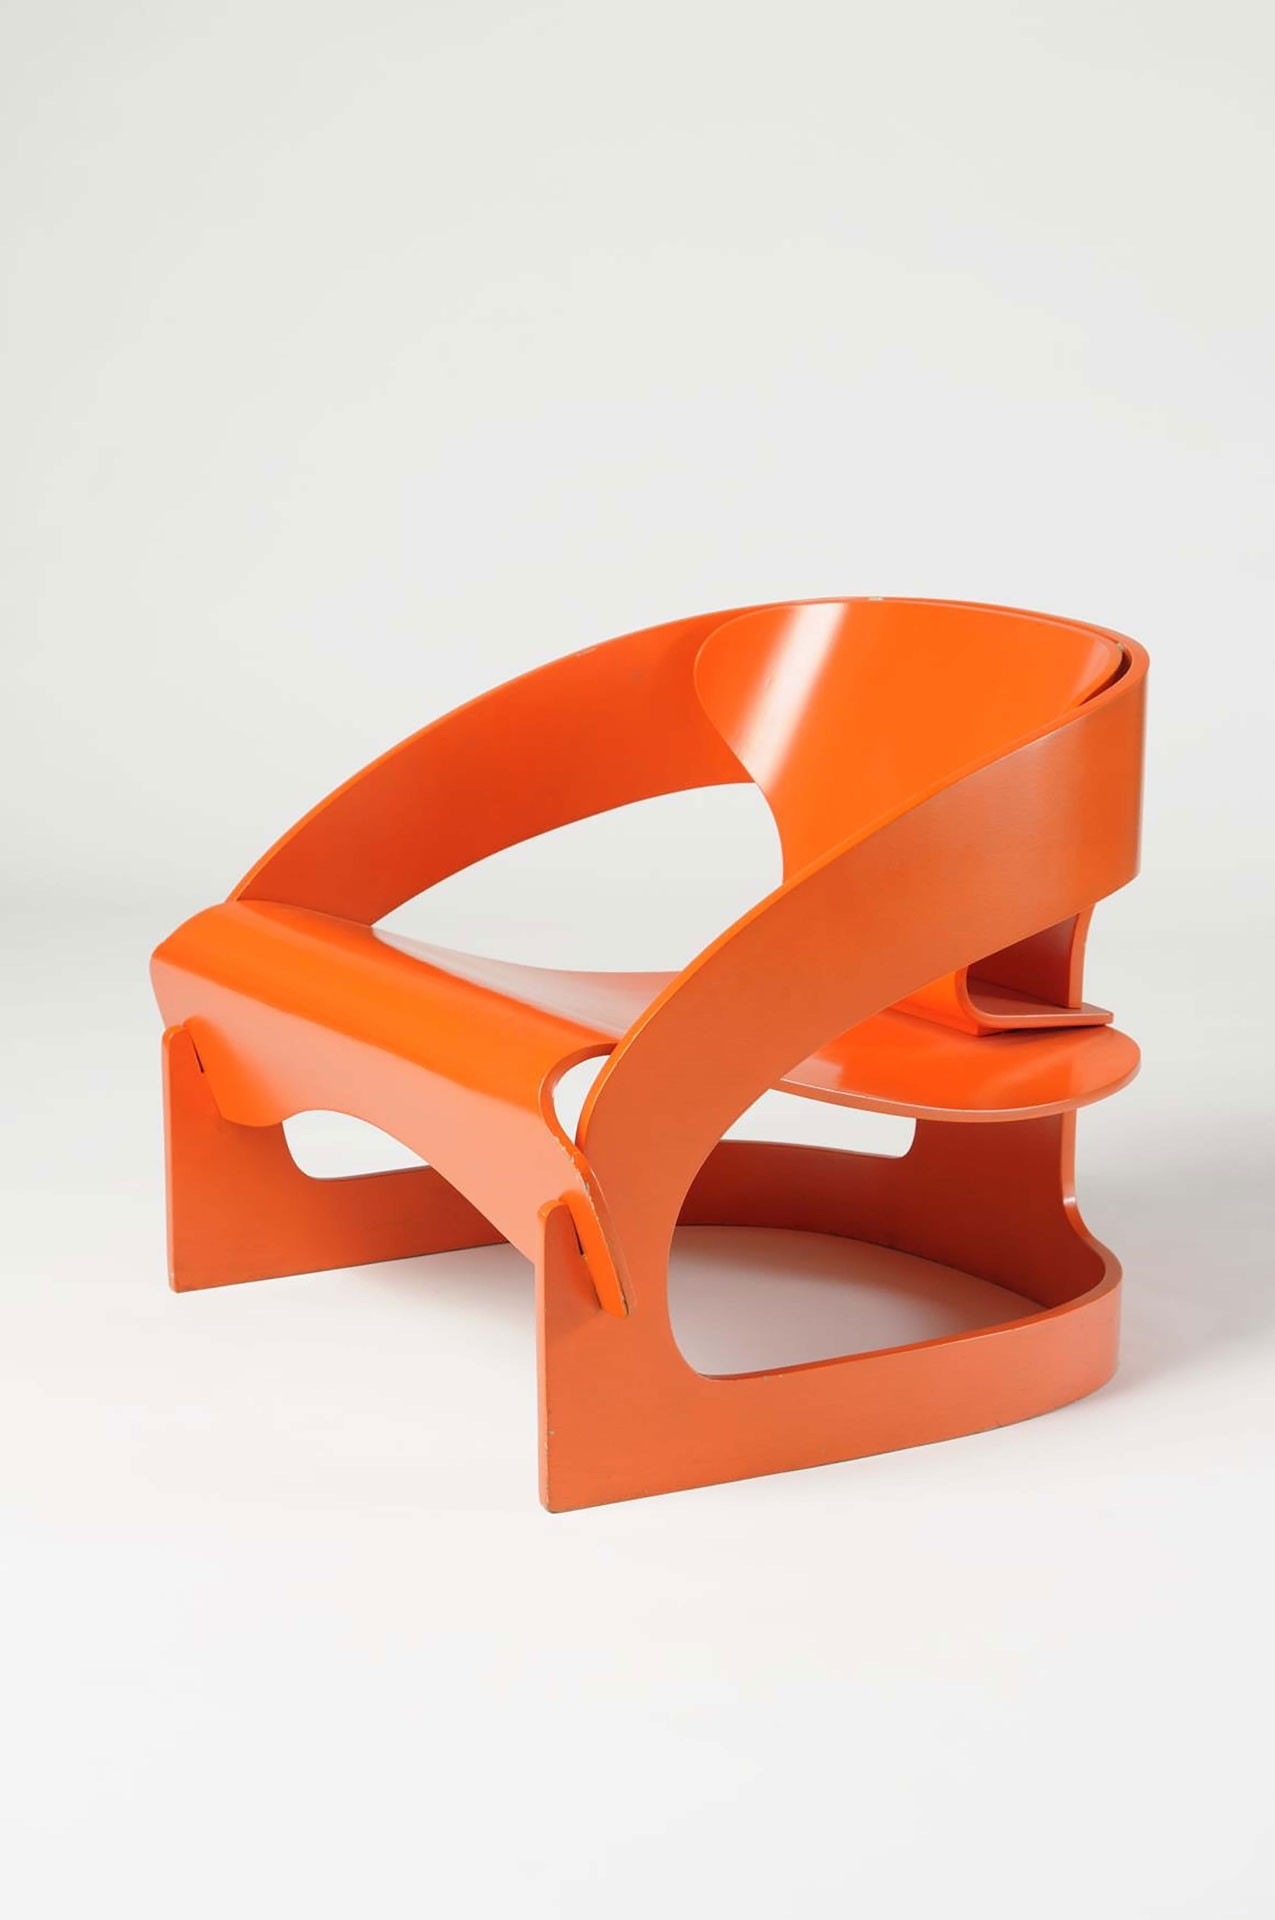 <BODY>Joe Colombo, Armchair, Model No. 4801, Italy, 1963<br />Plywood, bent, with orange painted polyester<br />© MAK/Nathan Murrell</BODY>